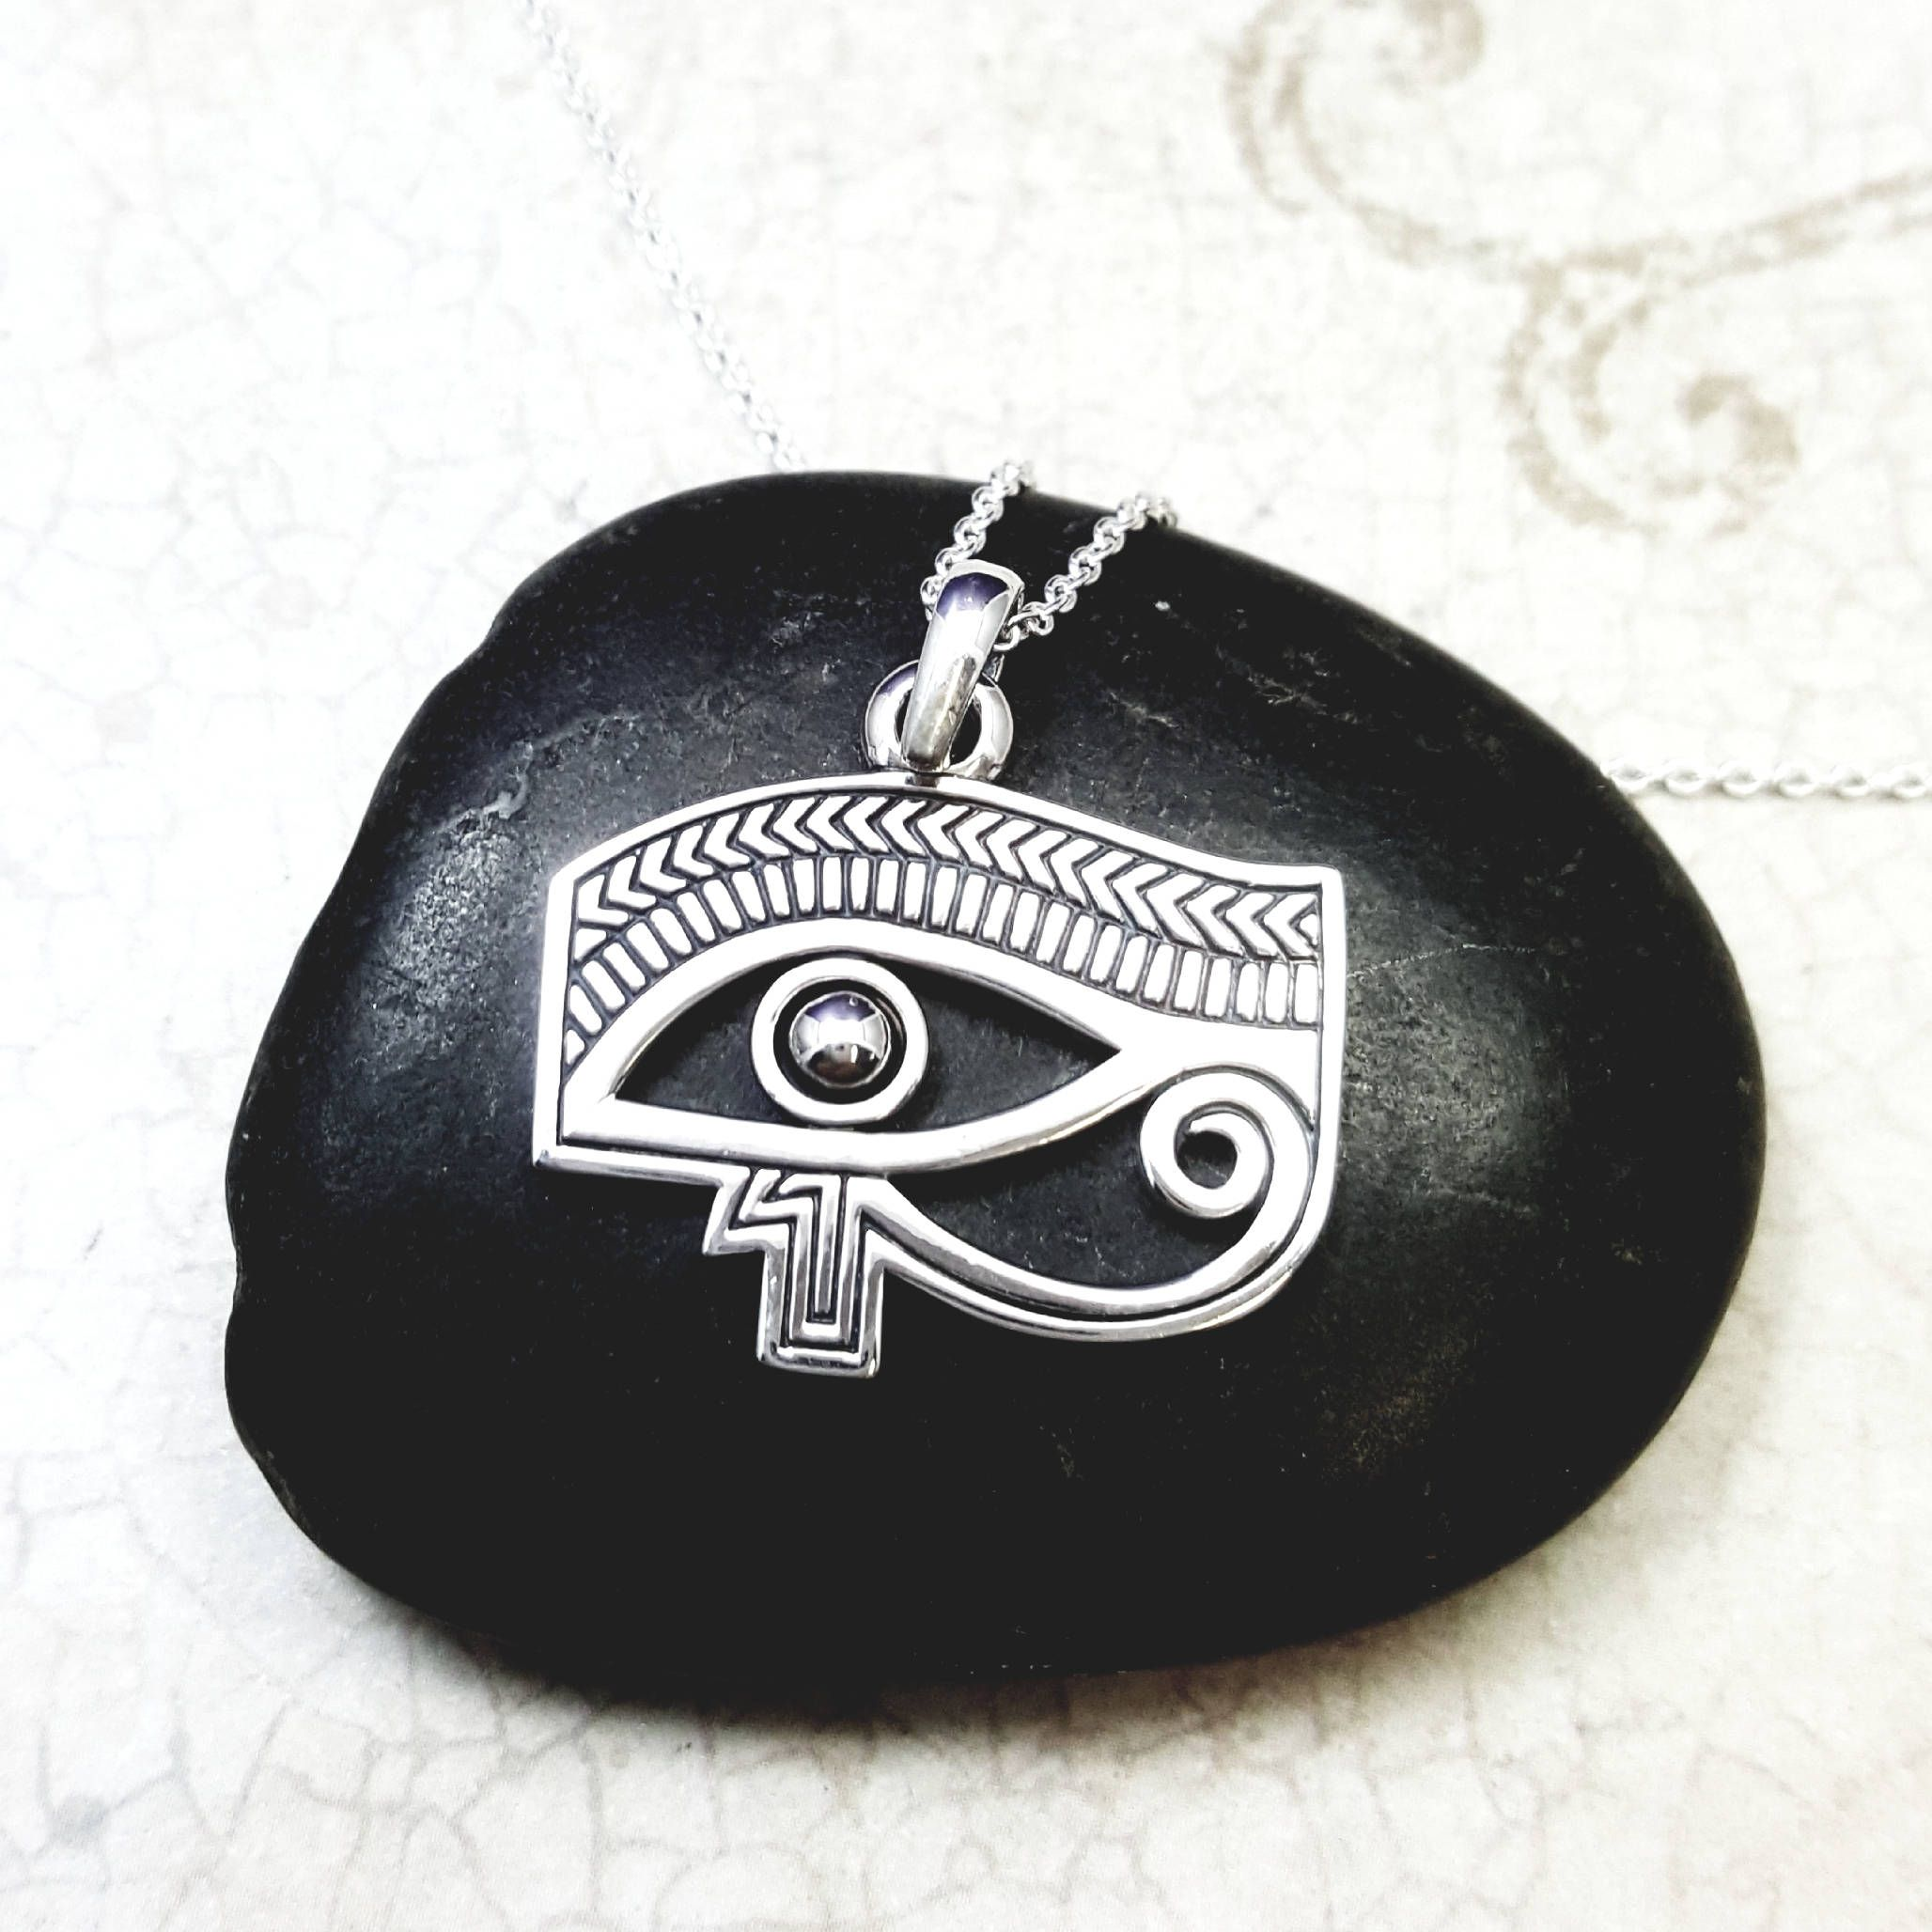 Eye of horus necklace solid sterling silver all seeing eye pendant eye of horus necklace solid sterling silver all seeing eye pendant eye of ra egyptian protection amulet goddess necklace cleopatra mozeypictures Images